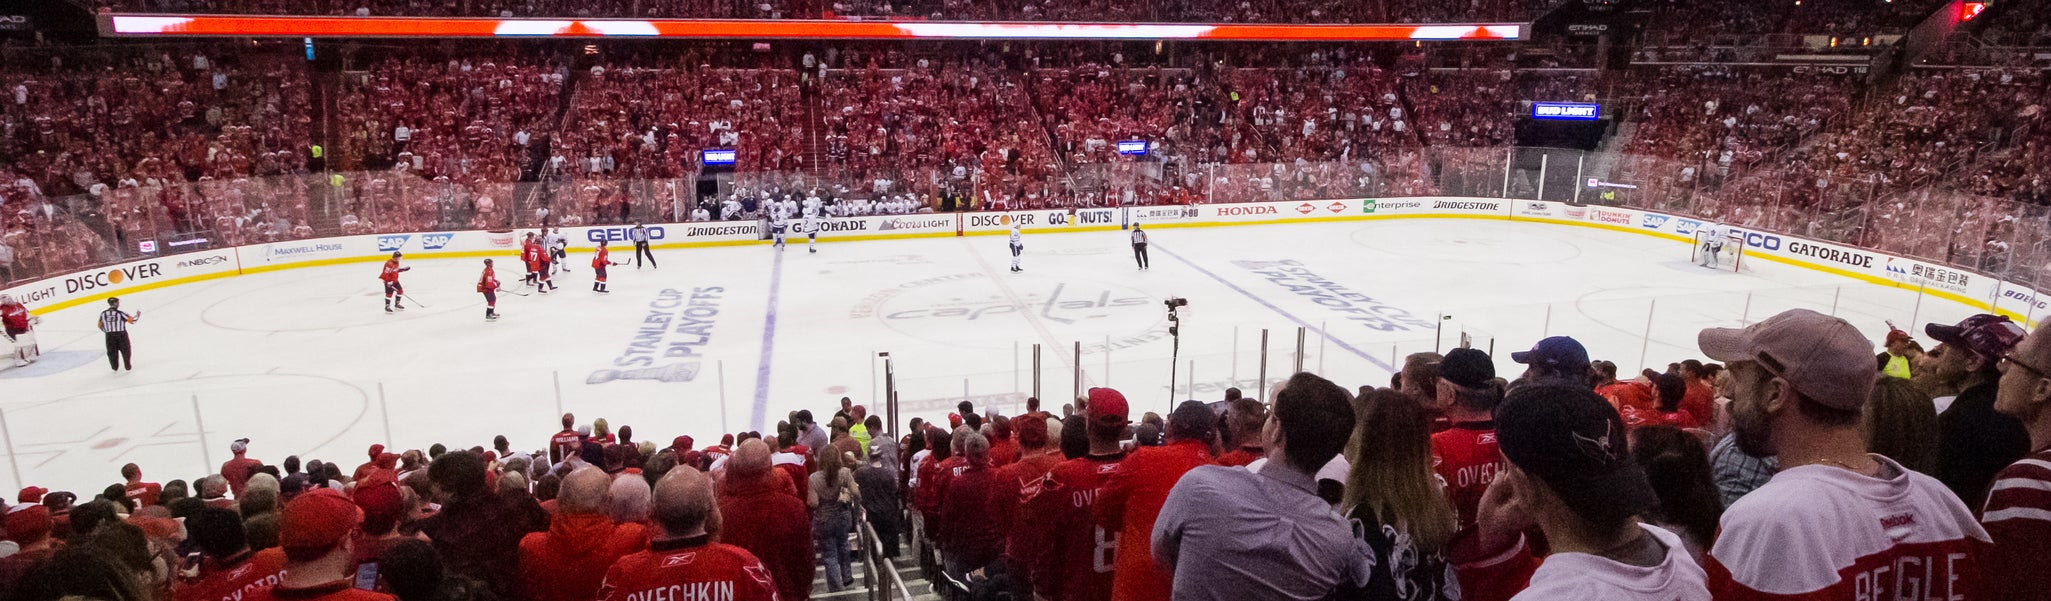 Seat view from LL Center Preferred 110 at Capital One Arena